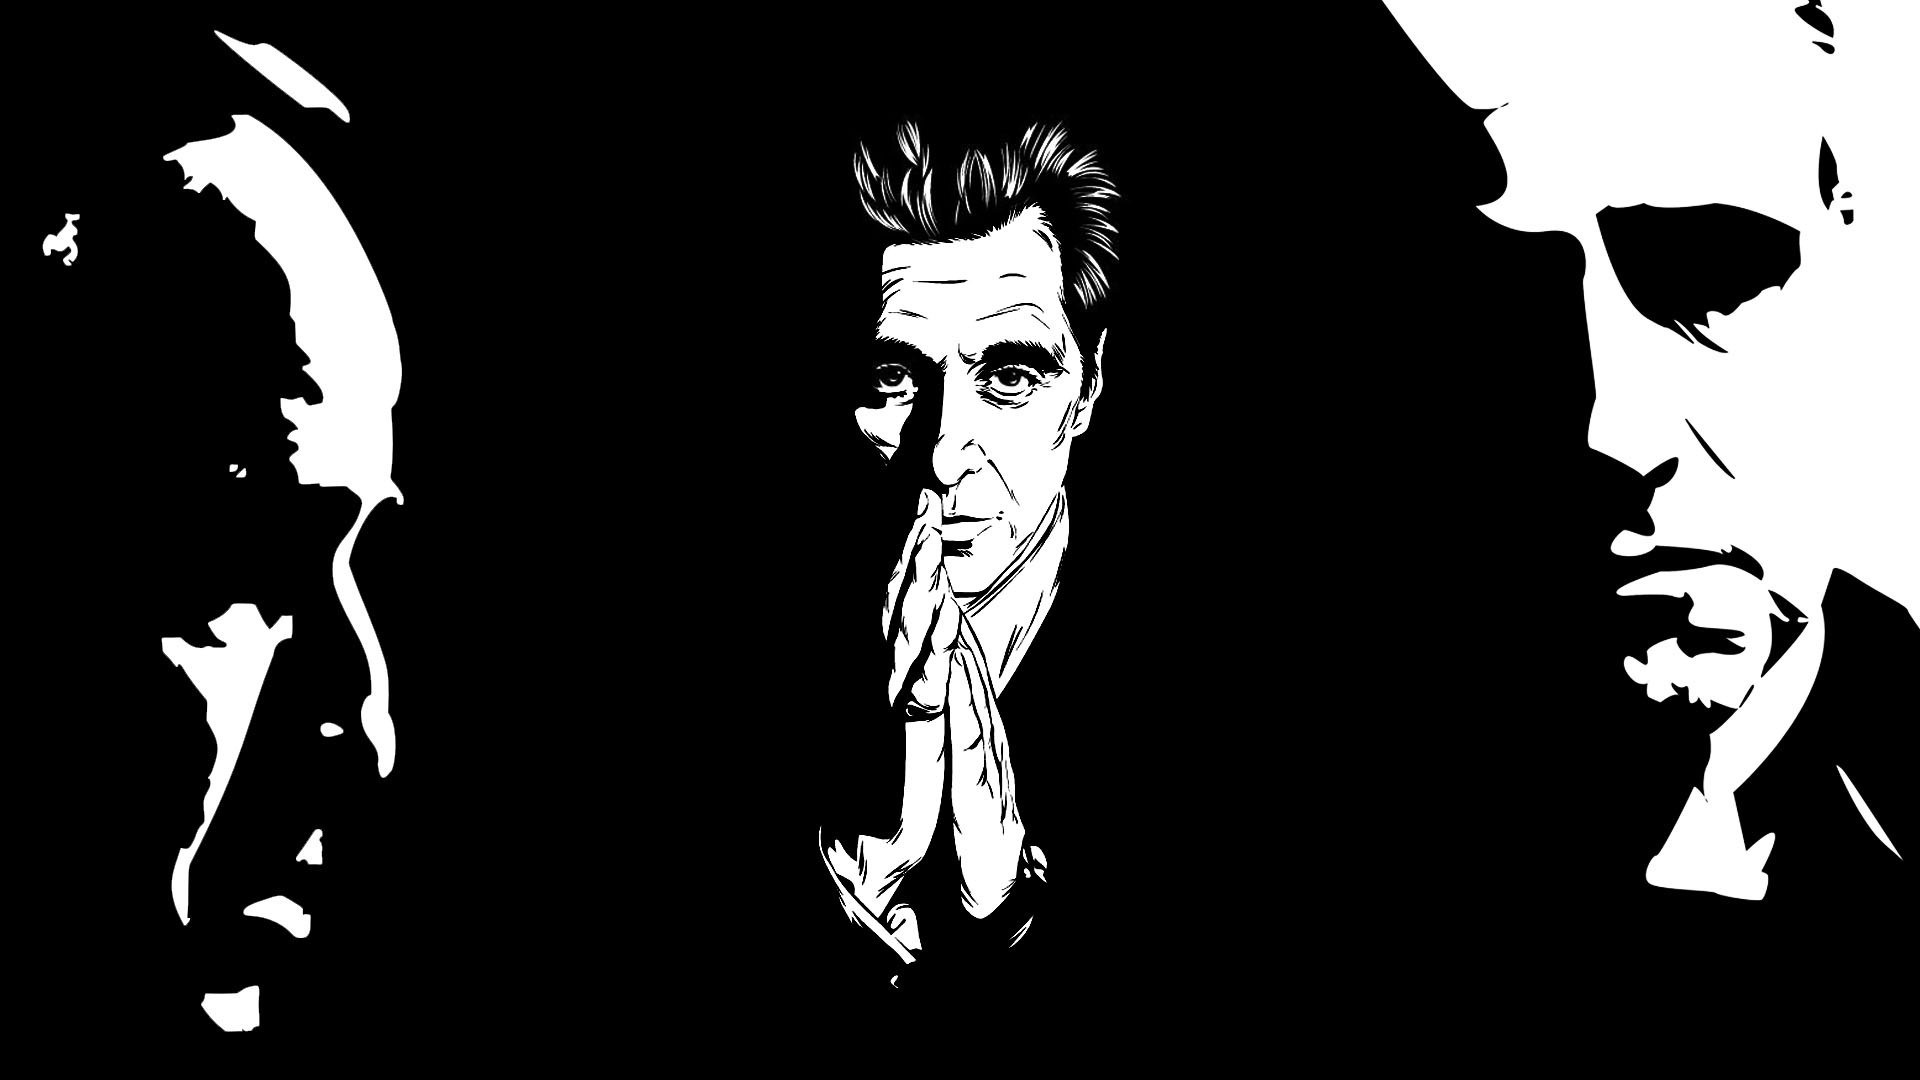 Res: 1920x1080, The Godfather Wallpaper